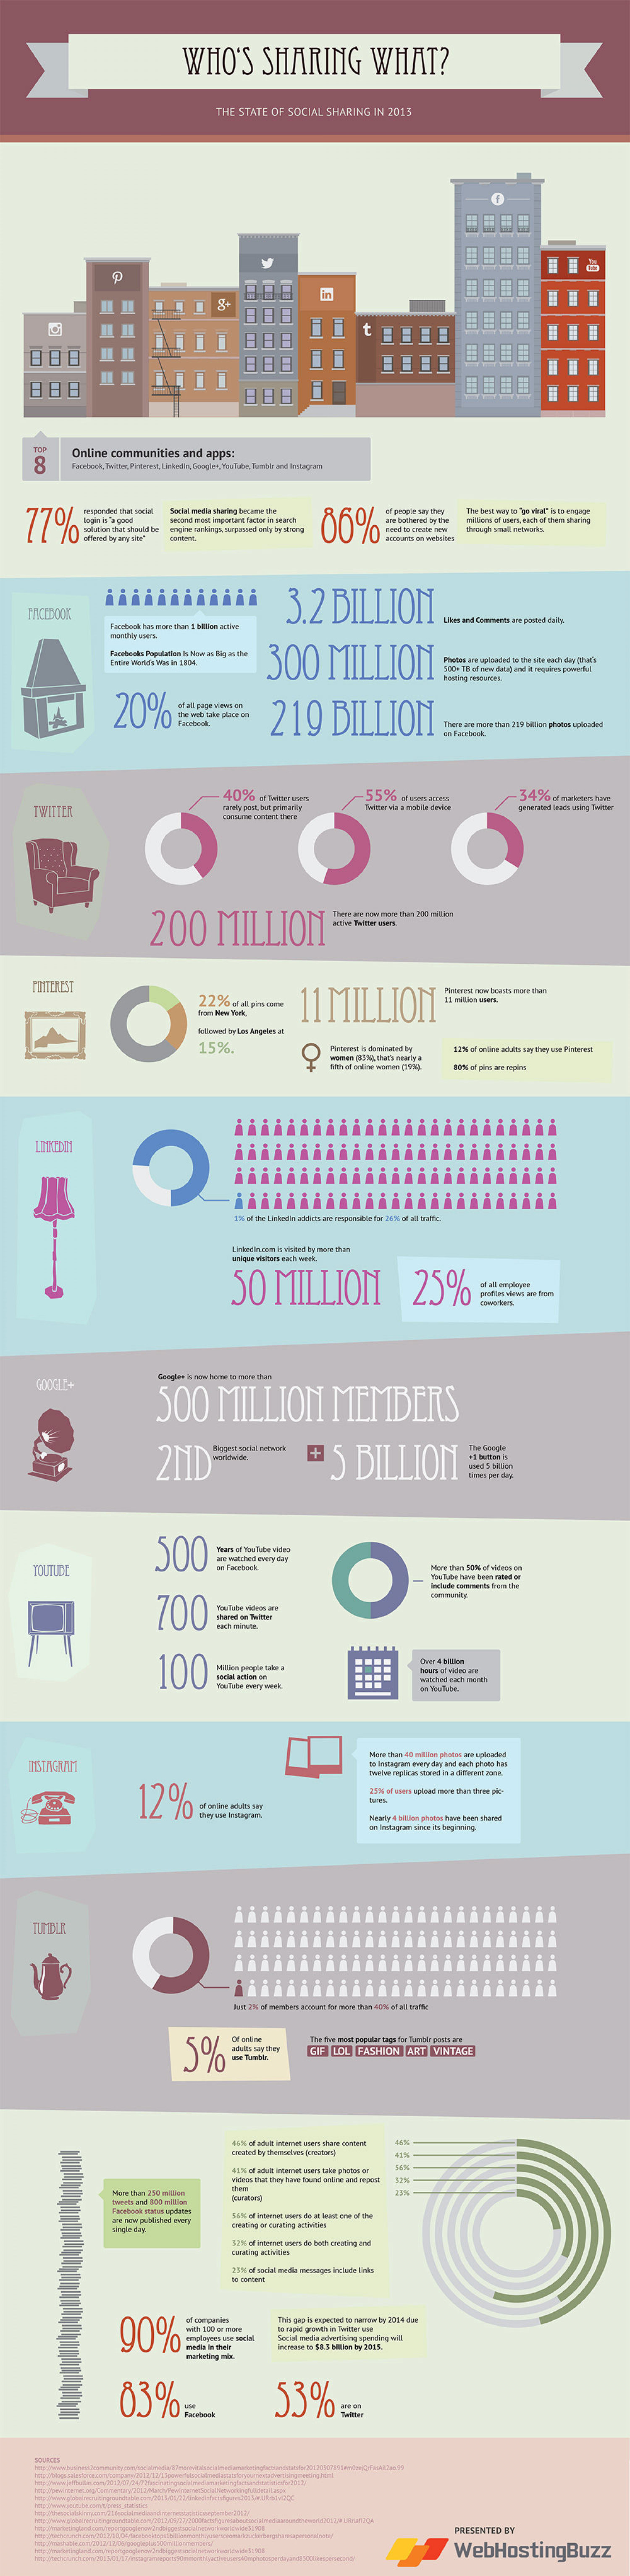 WHO'S SHARING WHAT – THE STATE OF SOCIAL SHARING IN 2013 Infographic